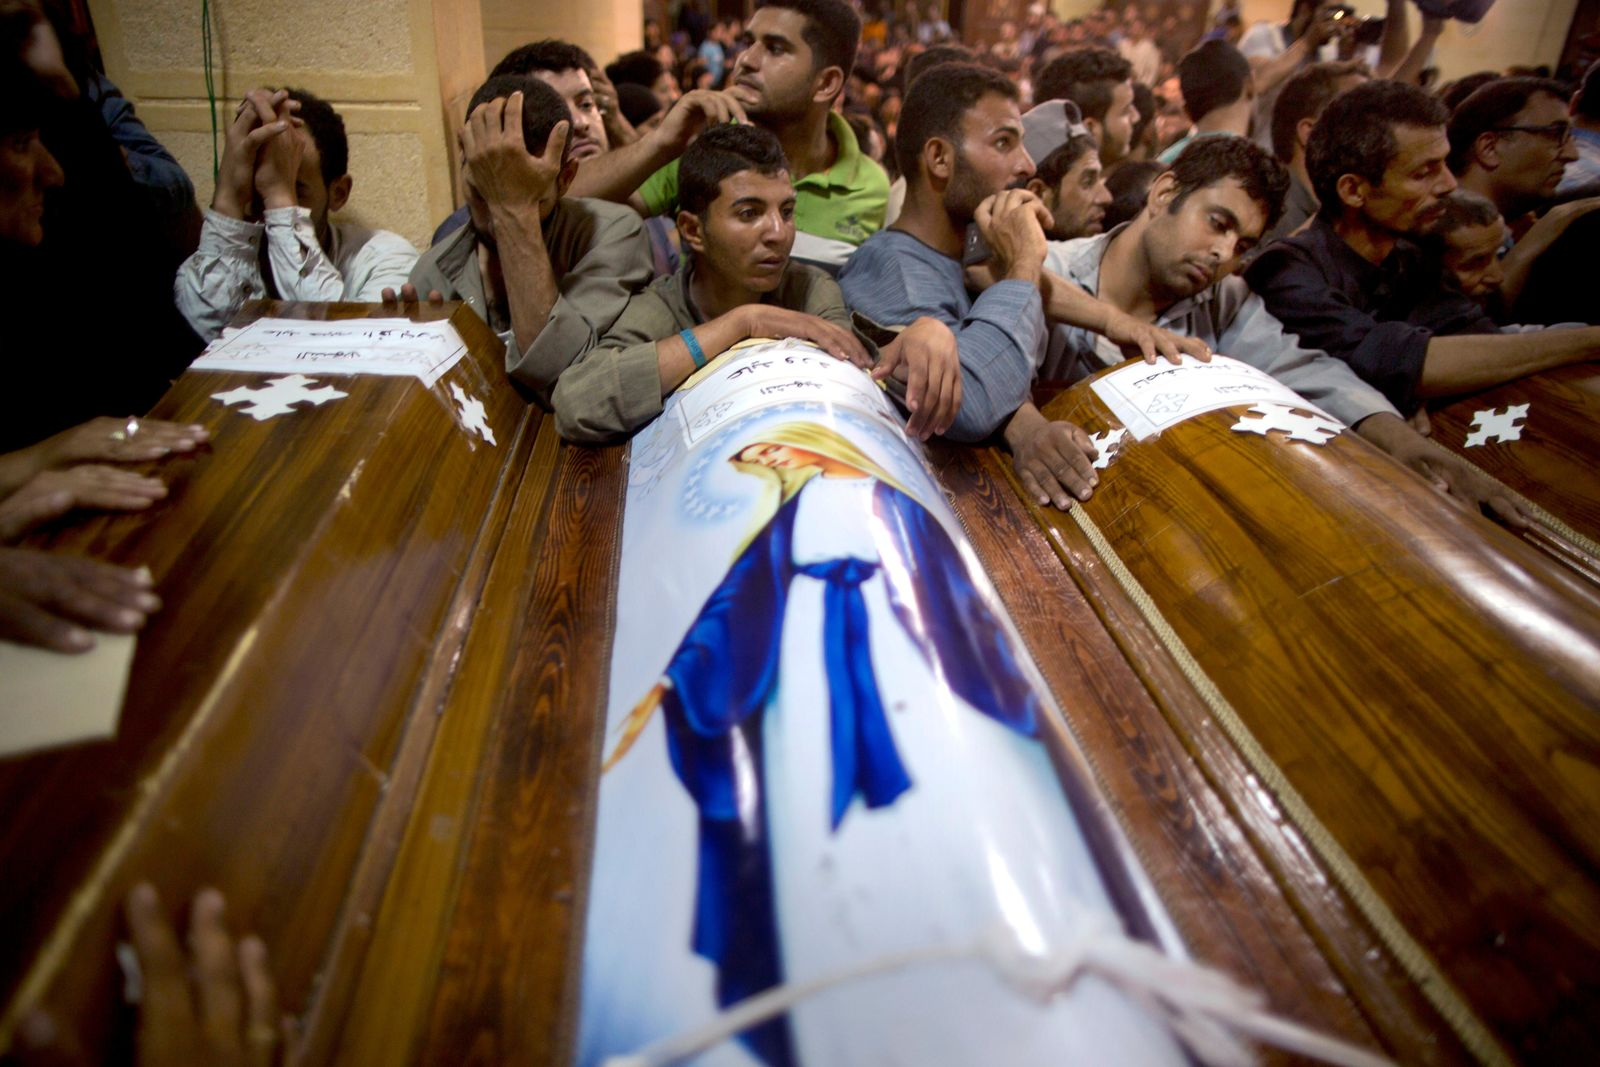 Relatives of Coptic Christians who were killed during a bus attack, surround their coffins, during their funeral service, at Abu Garnous Cathedral in Minya, Egypt, Friday, May 26, 2017. (AP Photo/Amr Nabil)